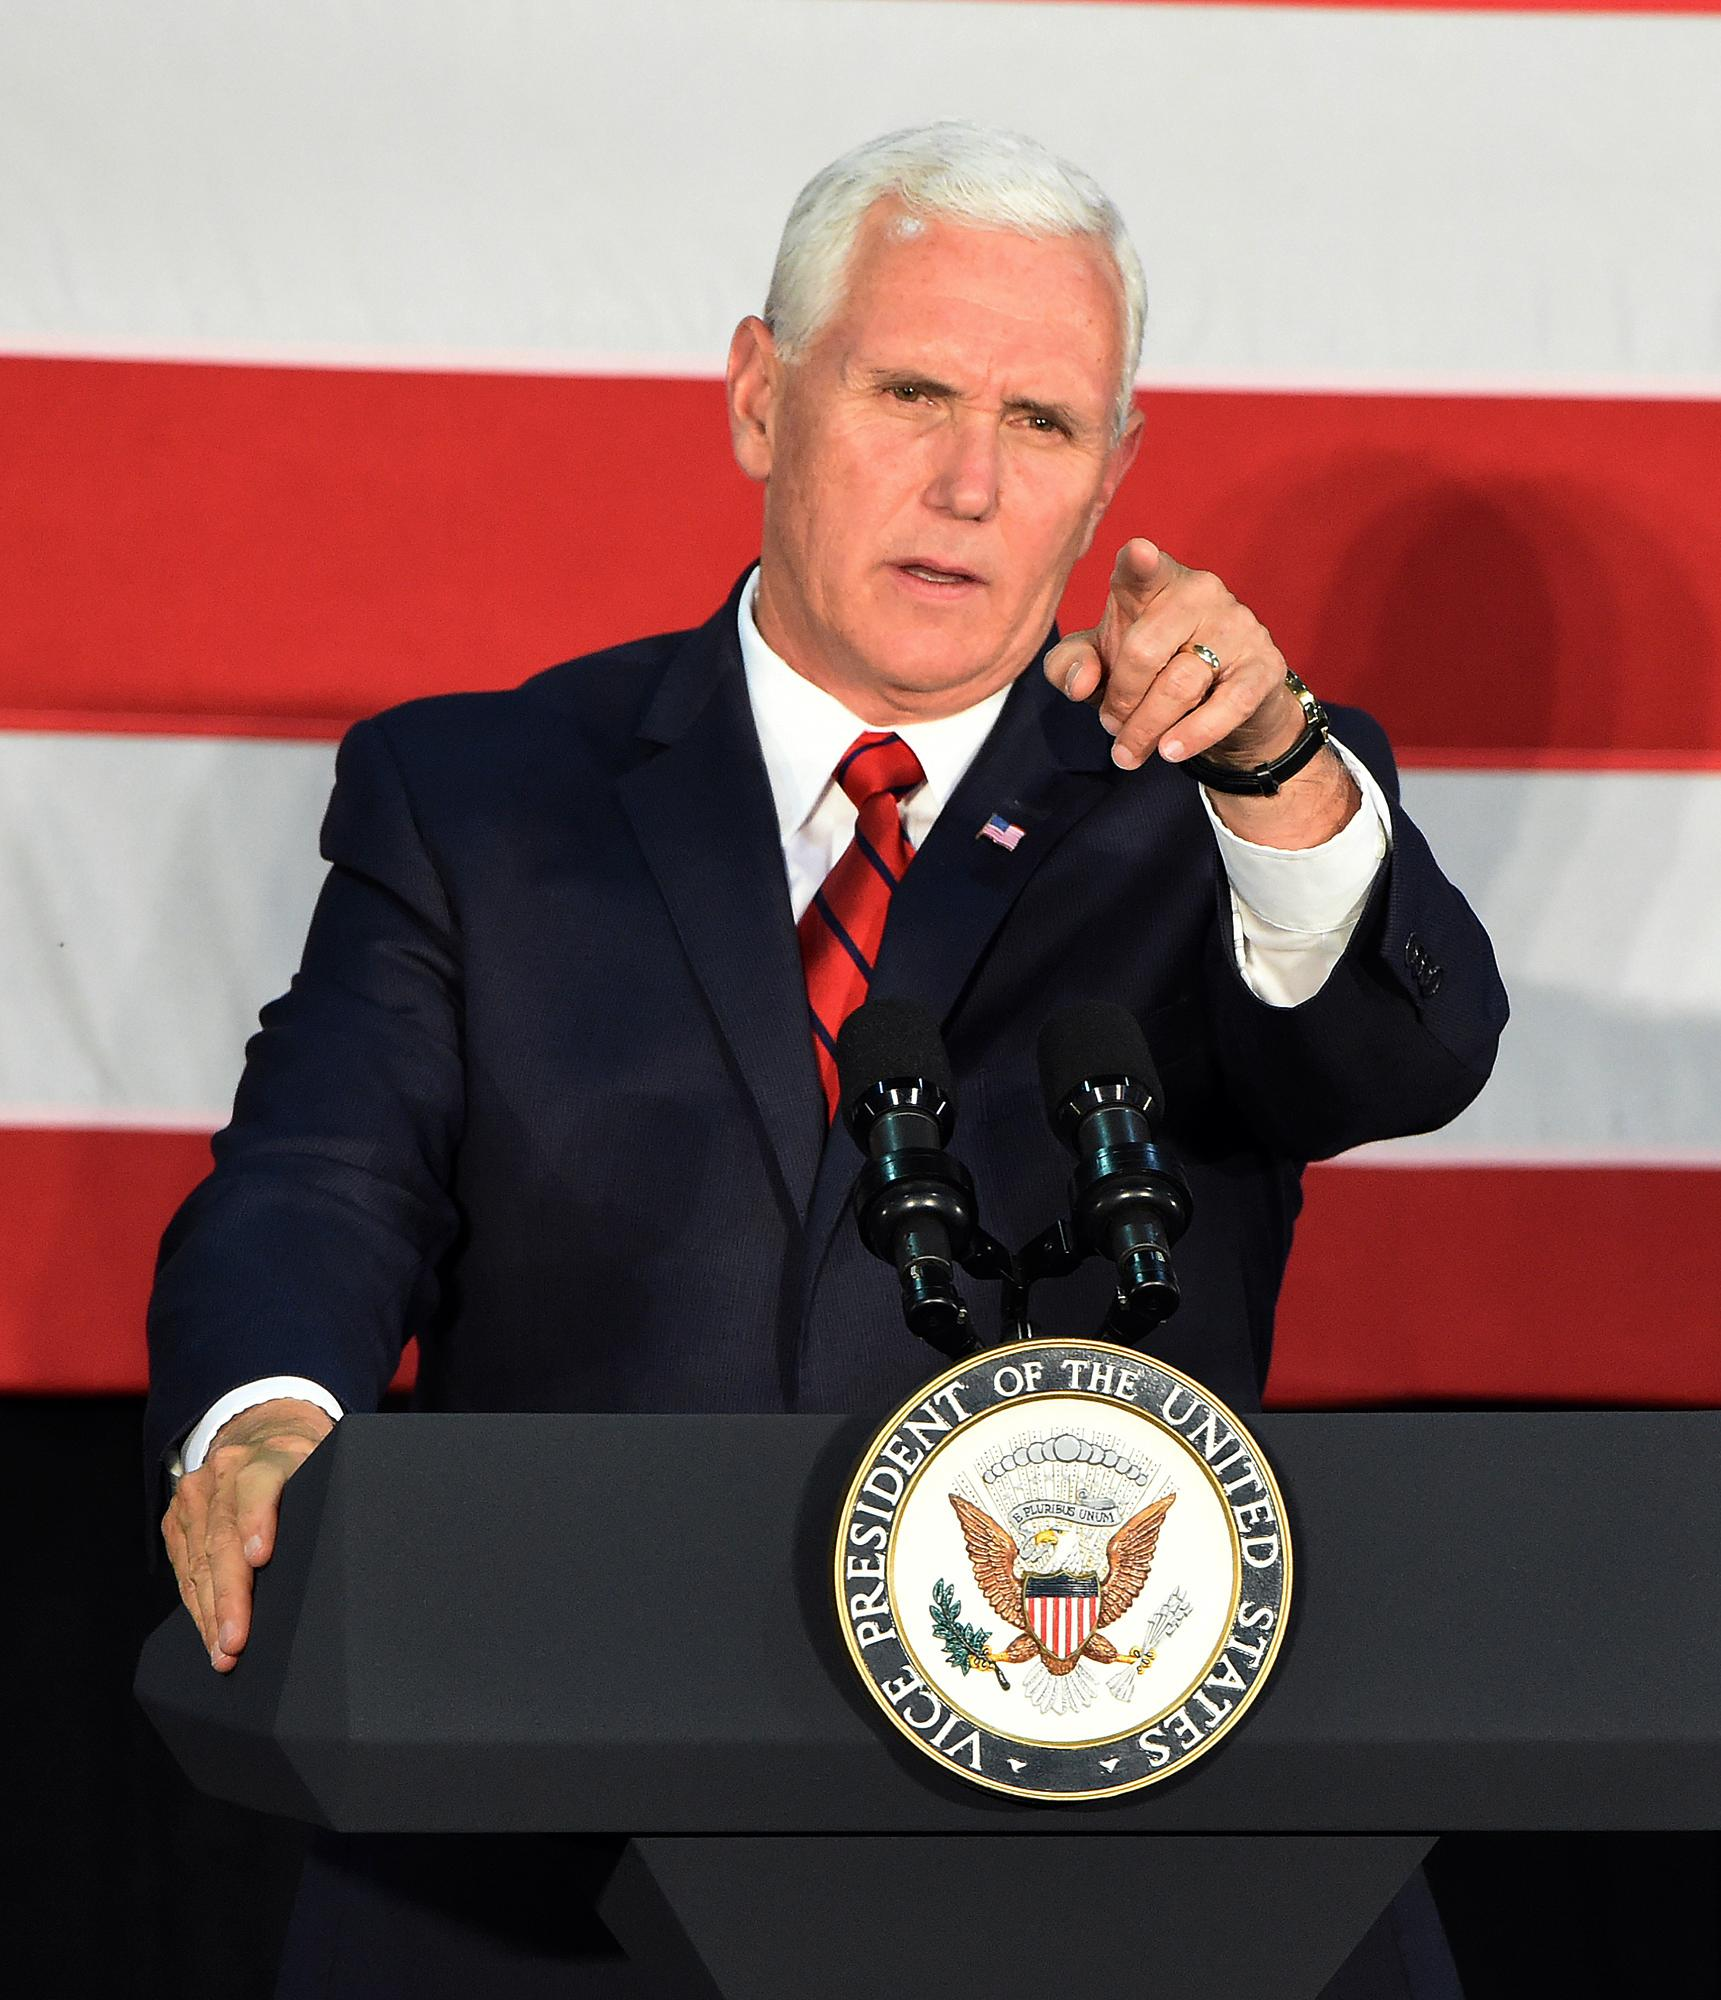 Vice President Mike Pence makes a campaign stop to support Sen. Luther Strange in Birmingham, Ala., Monday, Sept. 25, 2017. President Donald Trump called an Alabama radio show Monday to urge support for Strange in Tuesday's runoff for the GOP nomination, and Pence campaigned for Strange in Birmingham while Trump's former strategist, Steve Bannon, spoke at a Roy Moore rally at the coast. (Joe Songer/AL.com via AP)